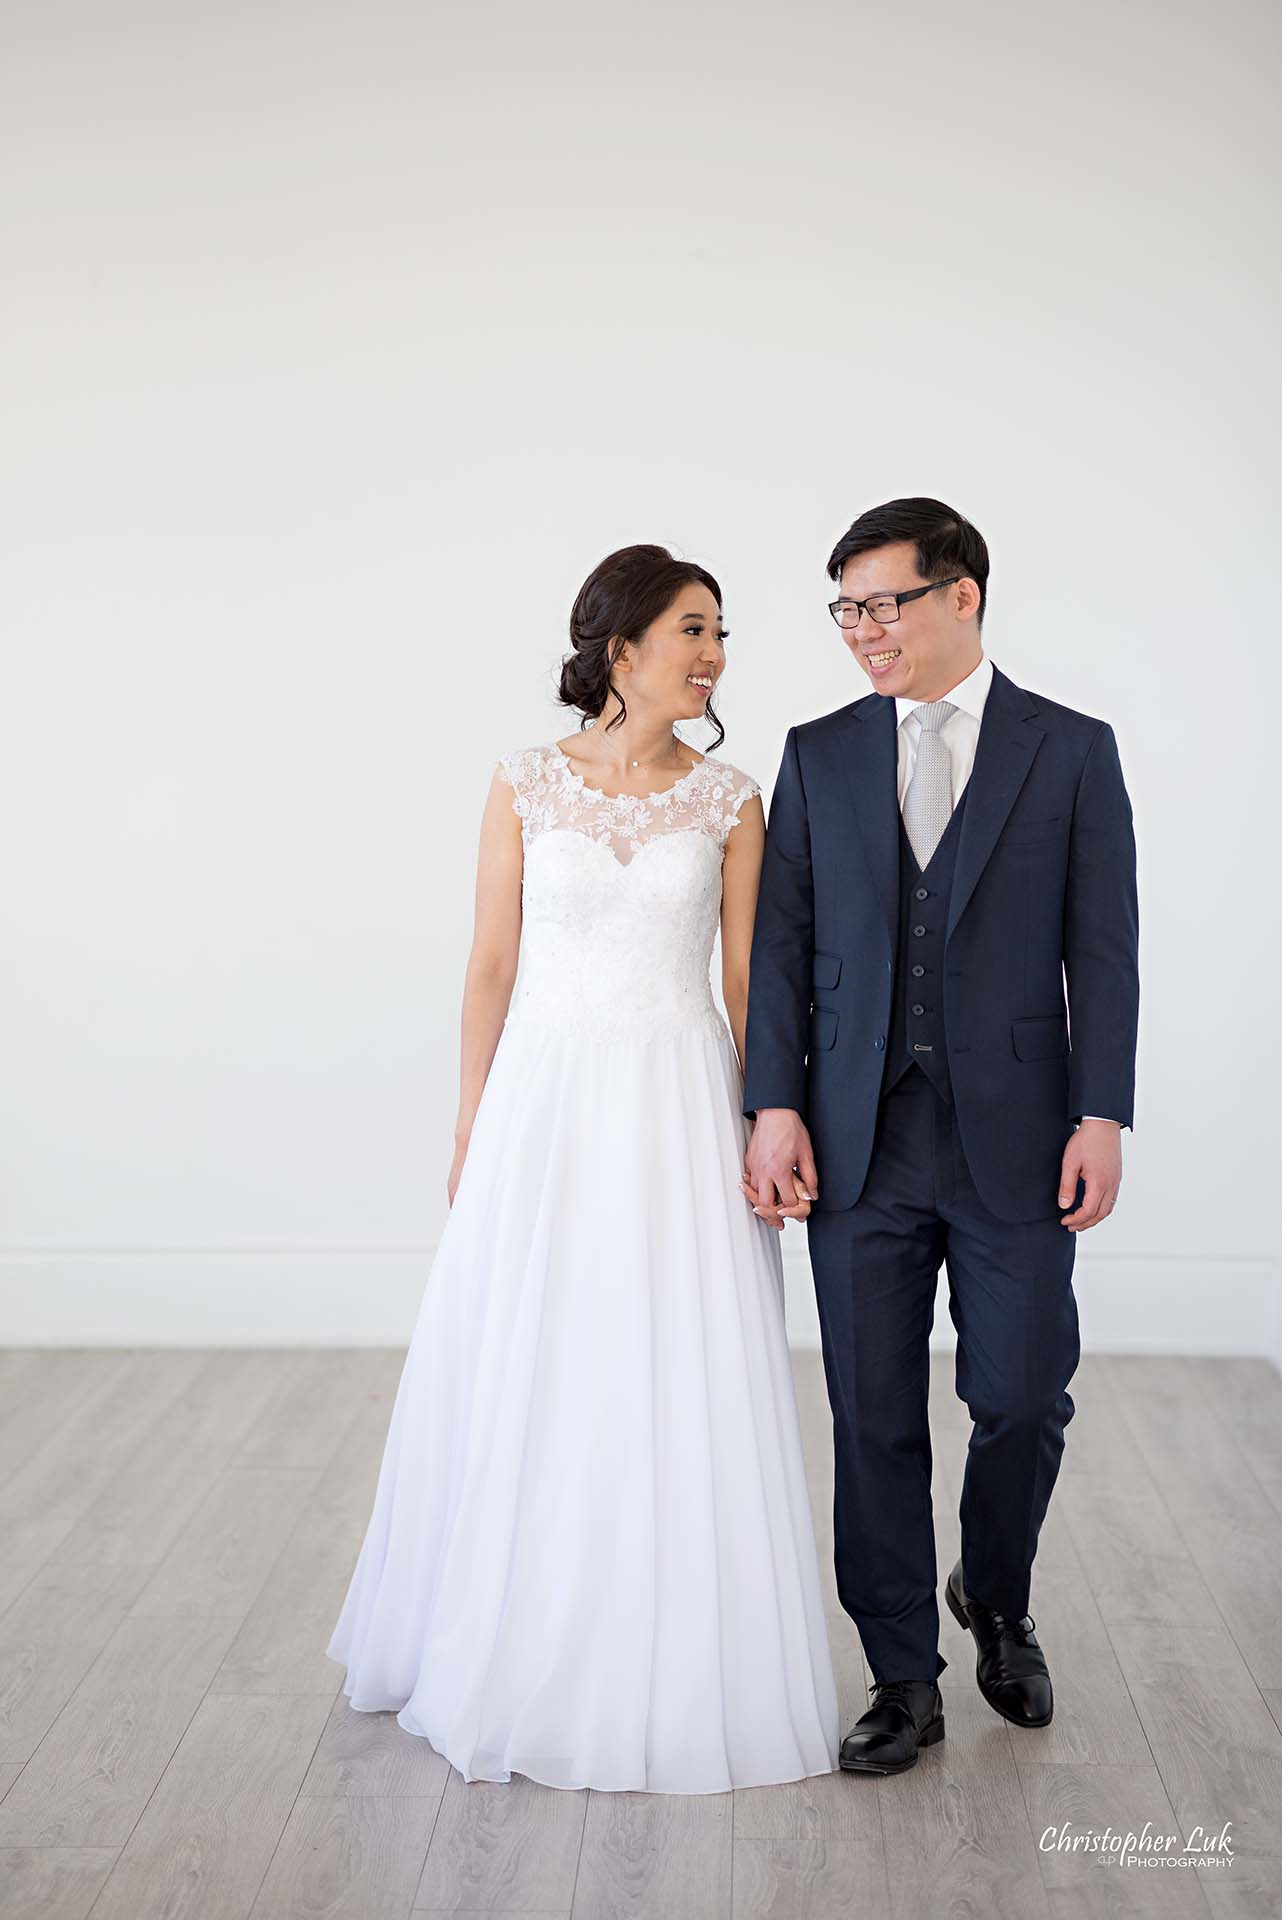 Christopher Luk Toronto Wedding Photographer - Mint Room Studios Bride Groom Natural Candid Photojournalistic Conservatory Ballroom Walking Together